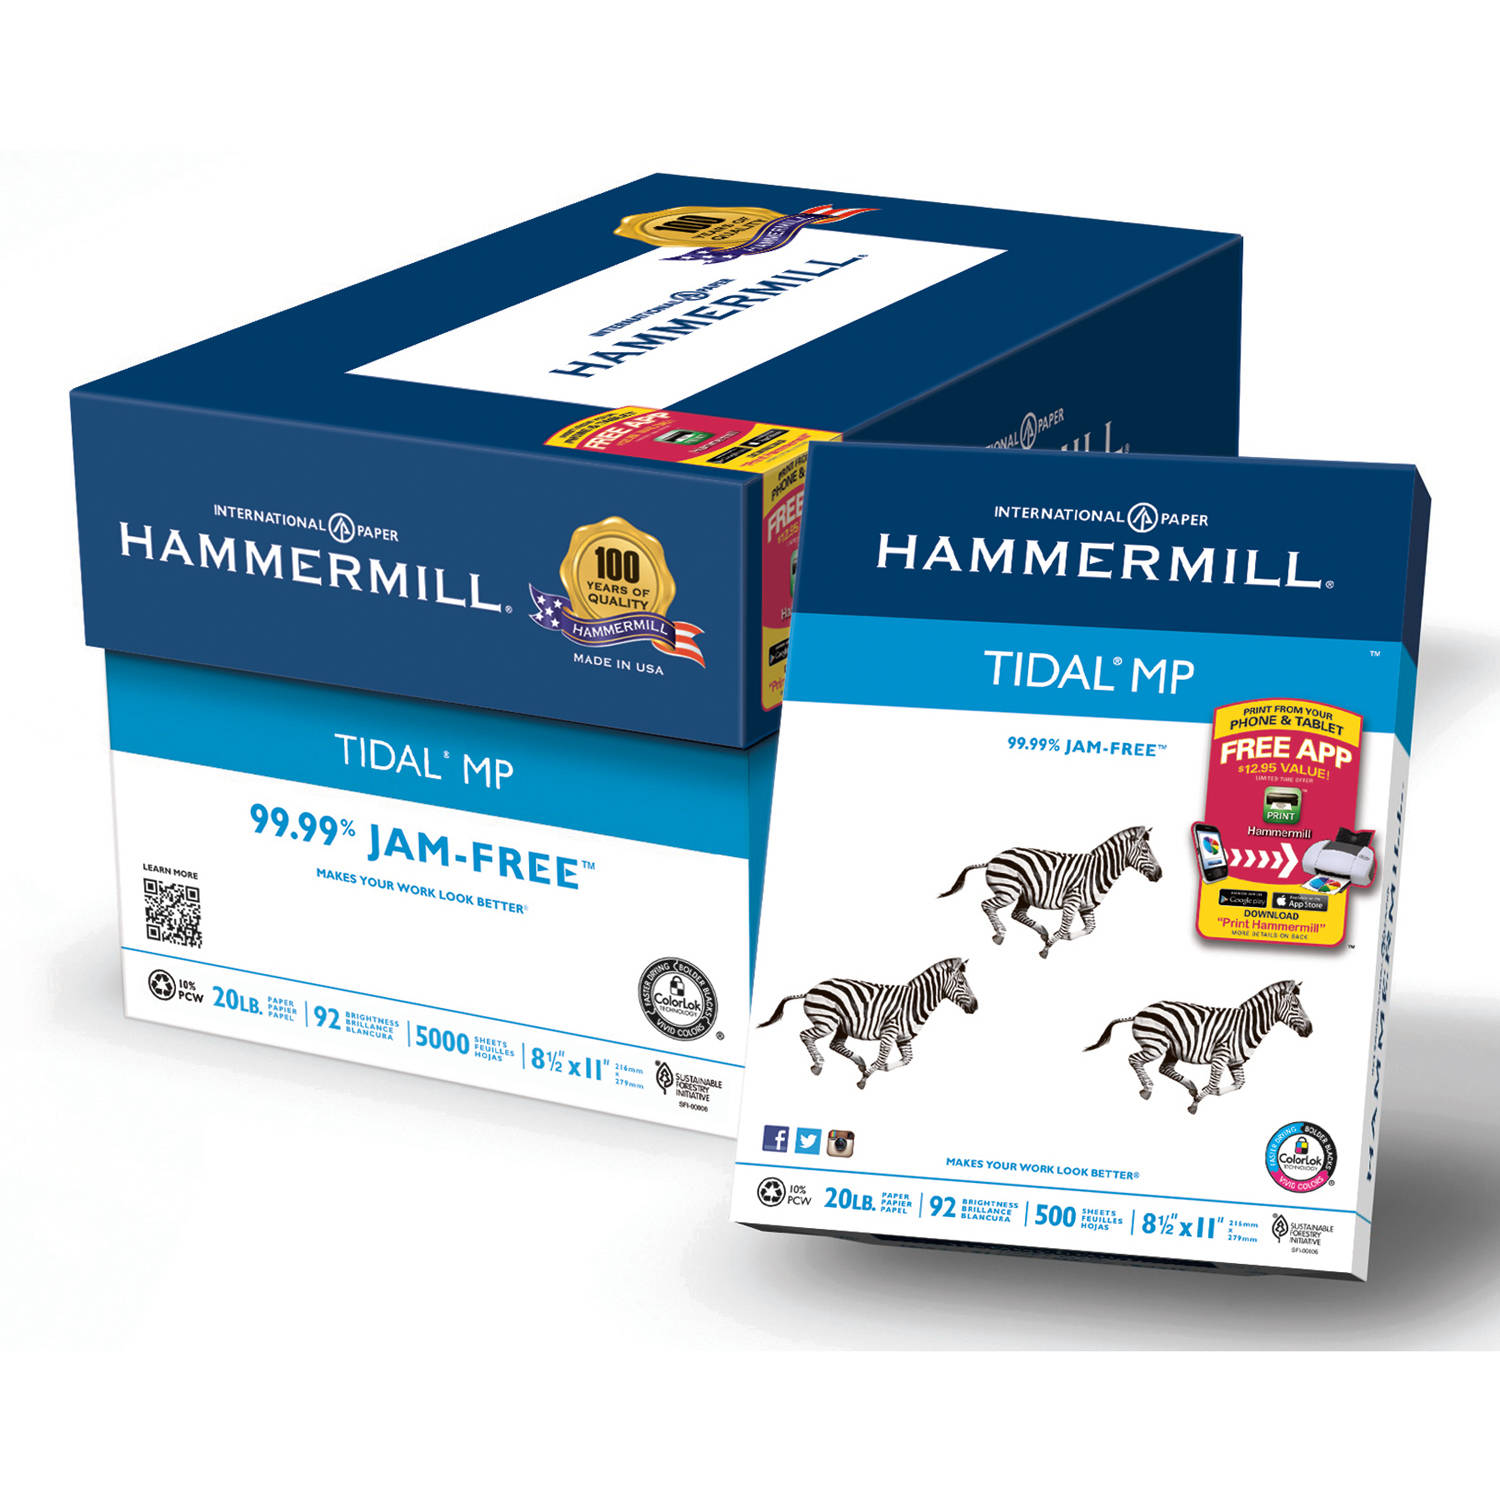 "Hammermill Everyday Copy And Print Paper 8.5"" x 11"", 92 Bright, 20lb, Case of 10 Reams (500 Sheets Per Ream)"